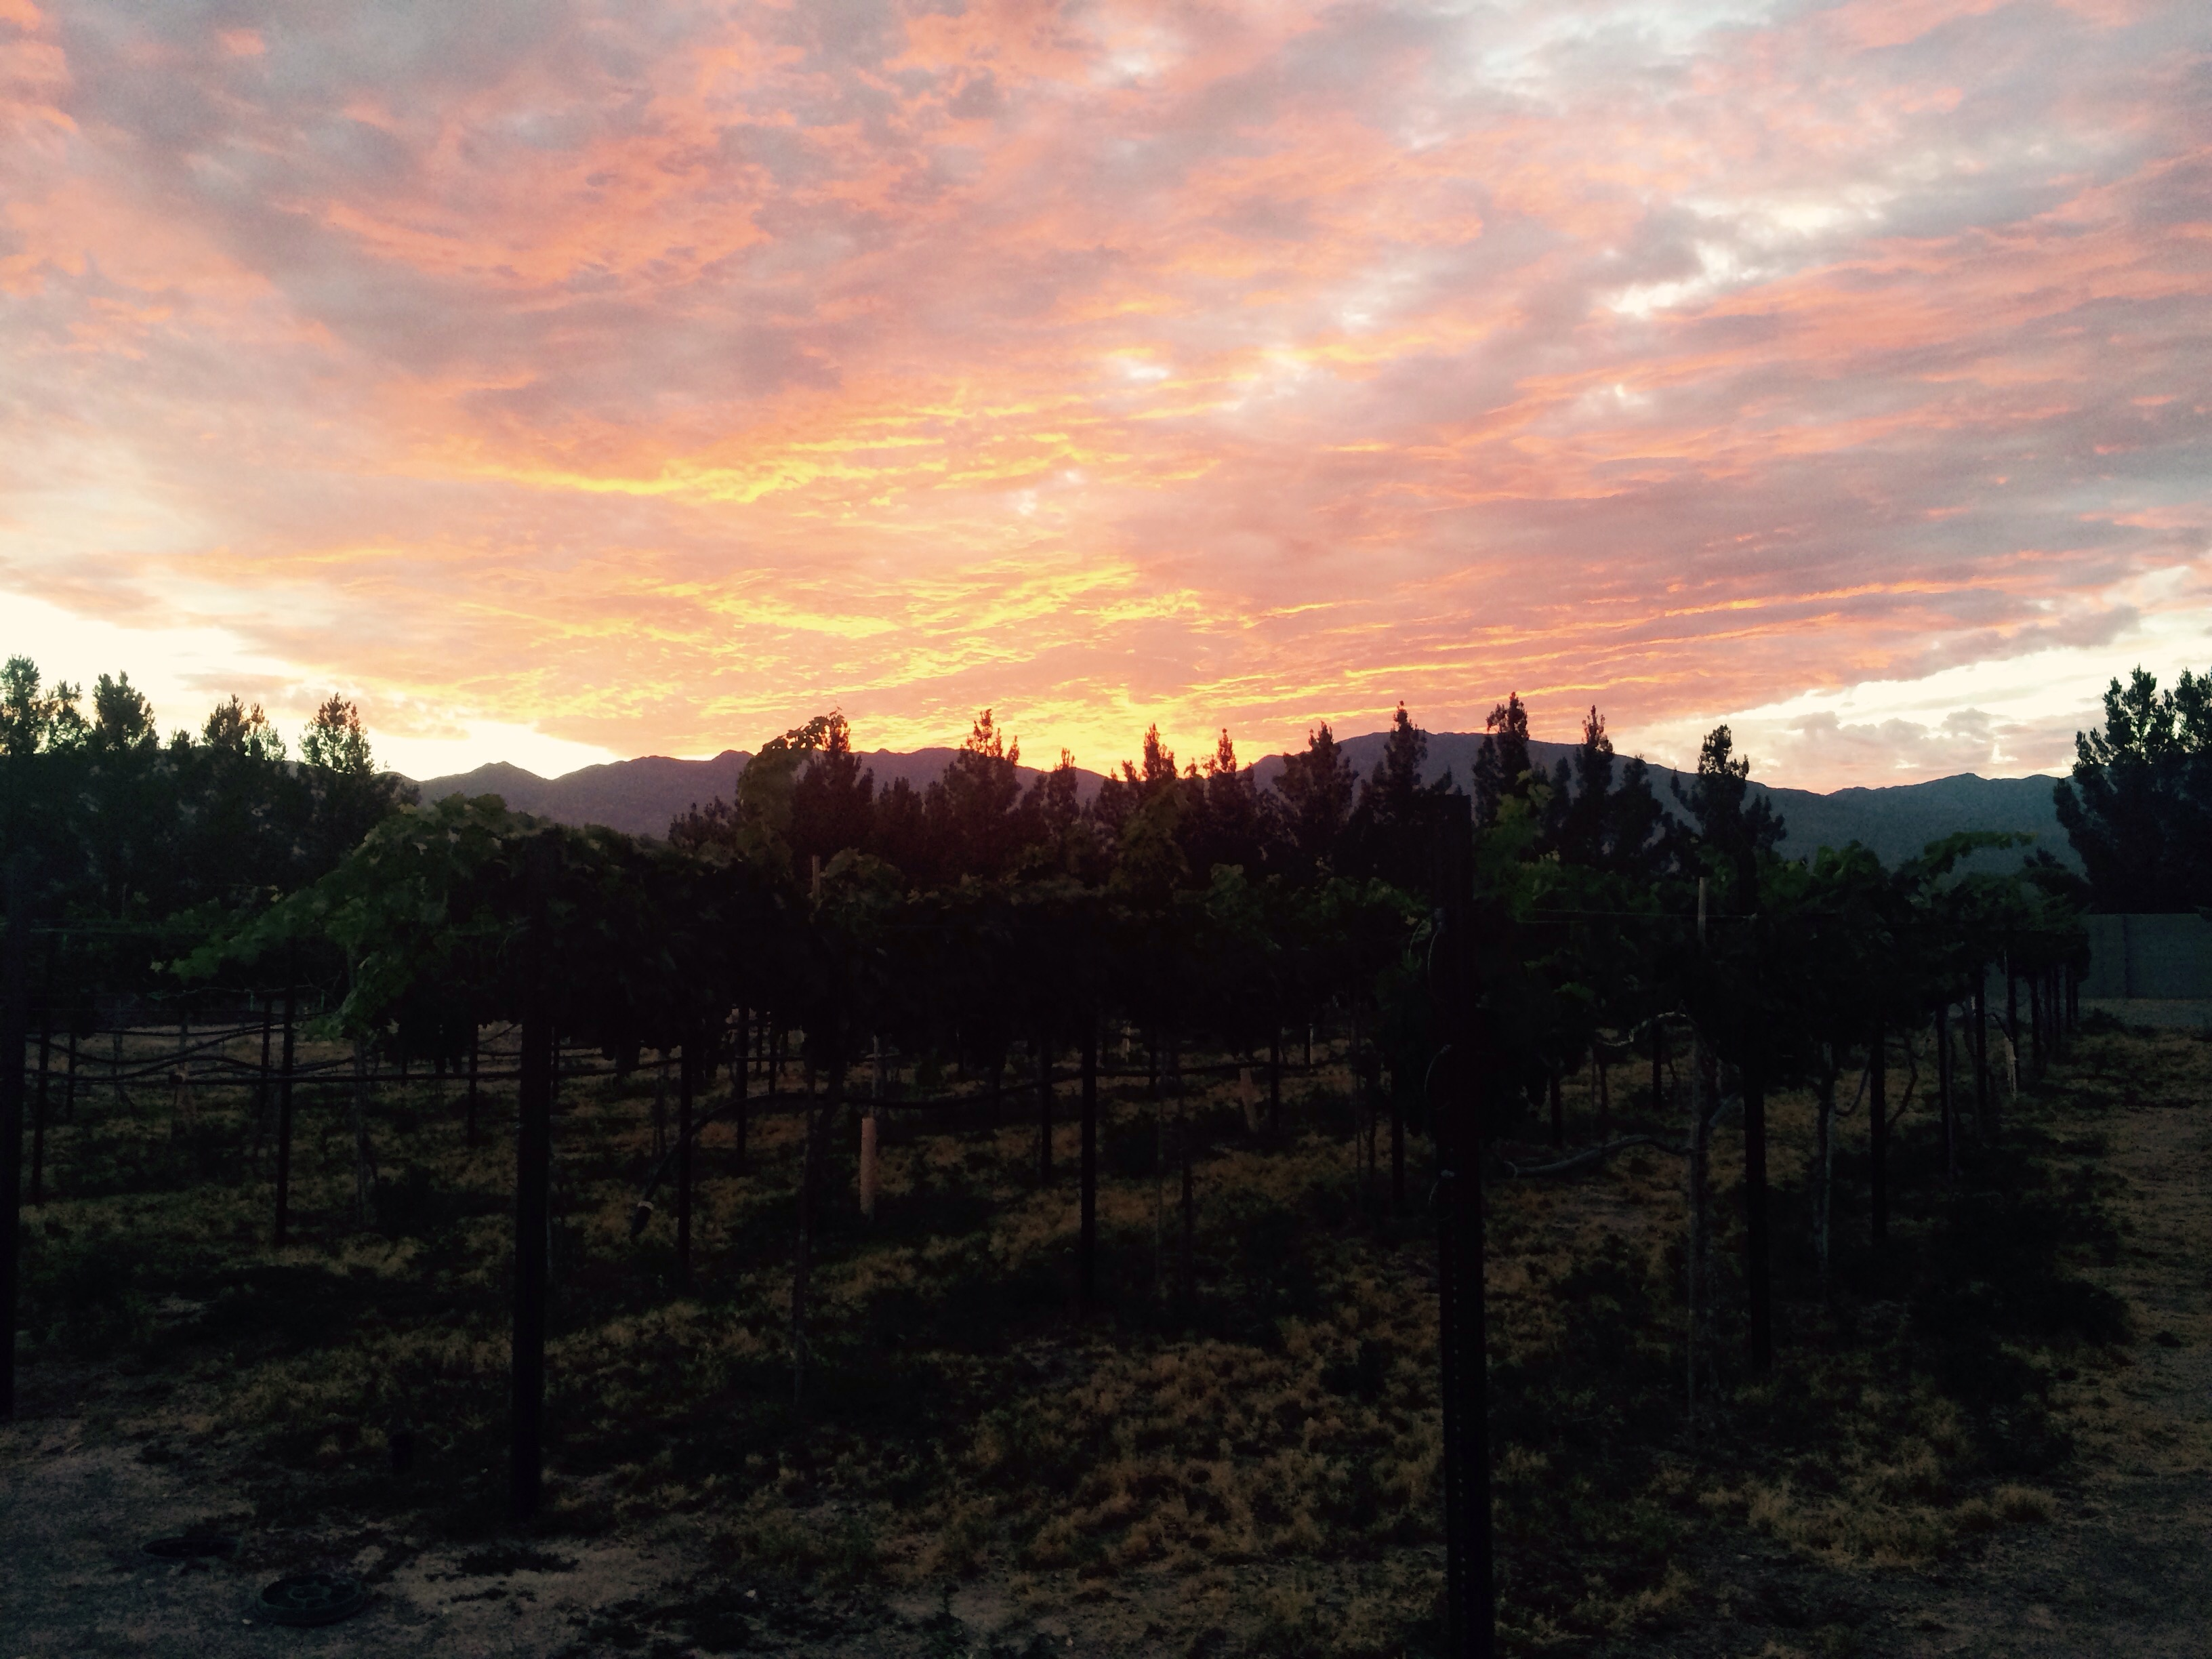 This is the views I got as I fed the animals beautiful sunrise